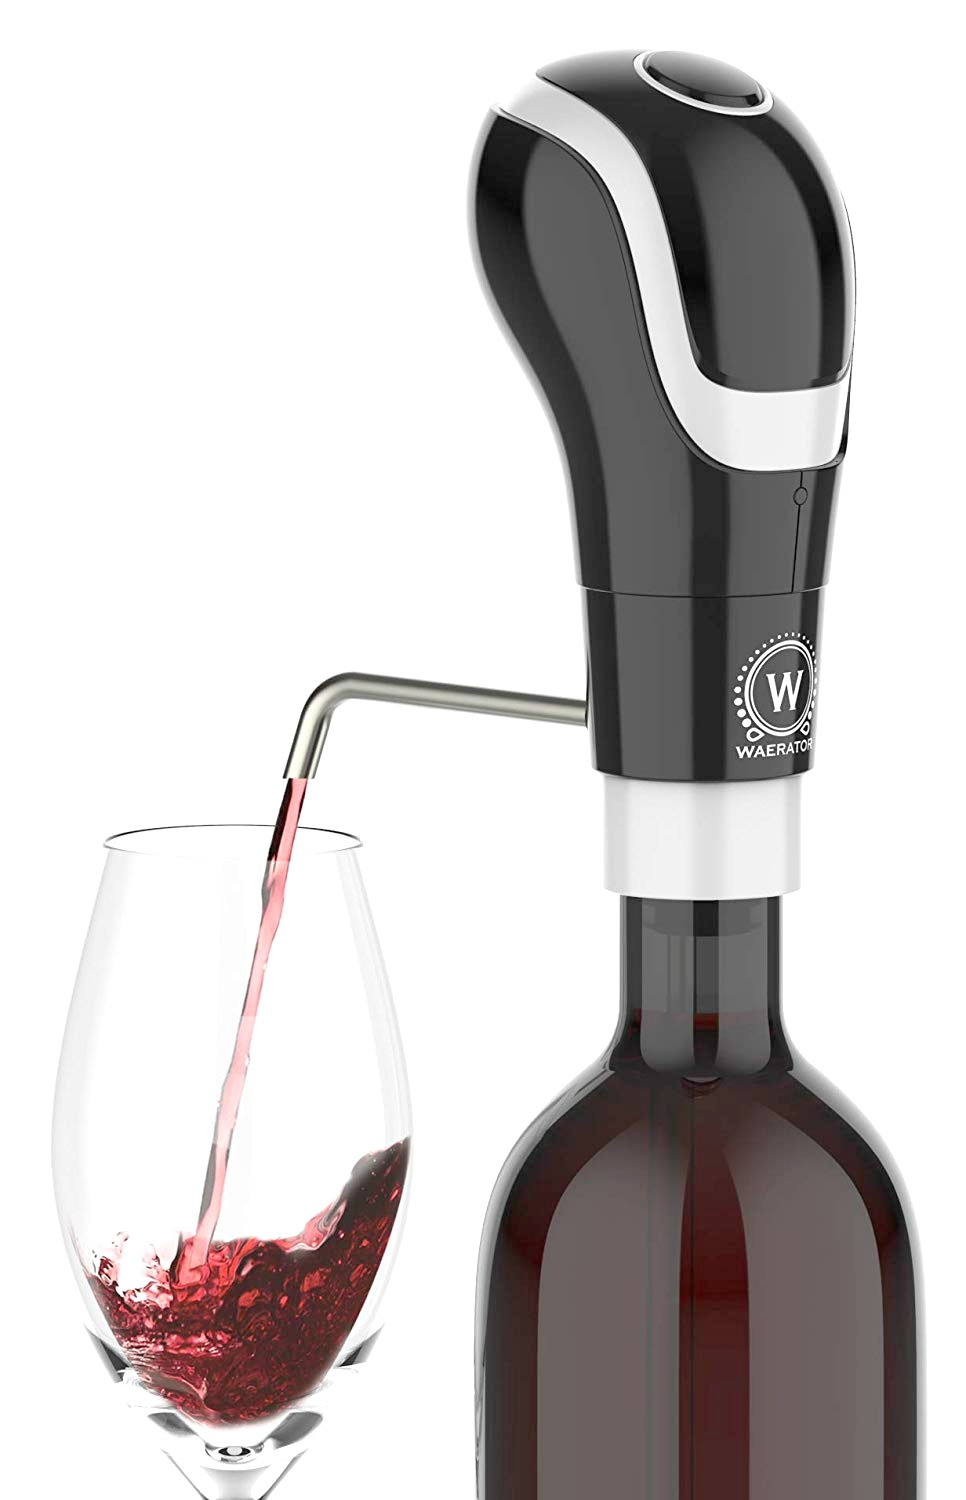 A wine bottle is shown pouring wine into a glass with an aerator.